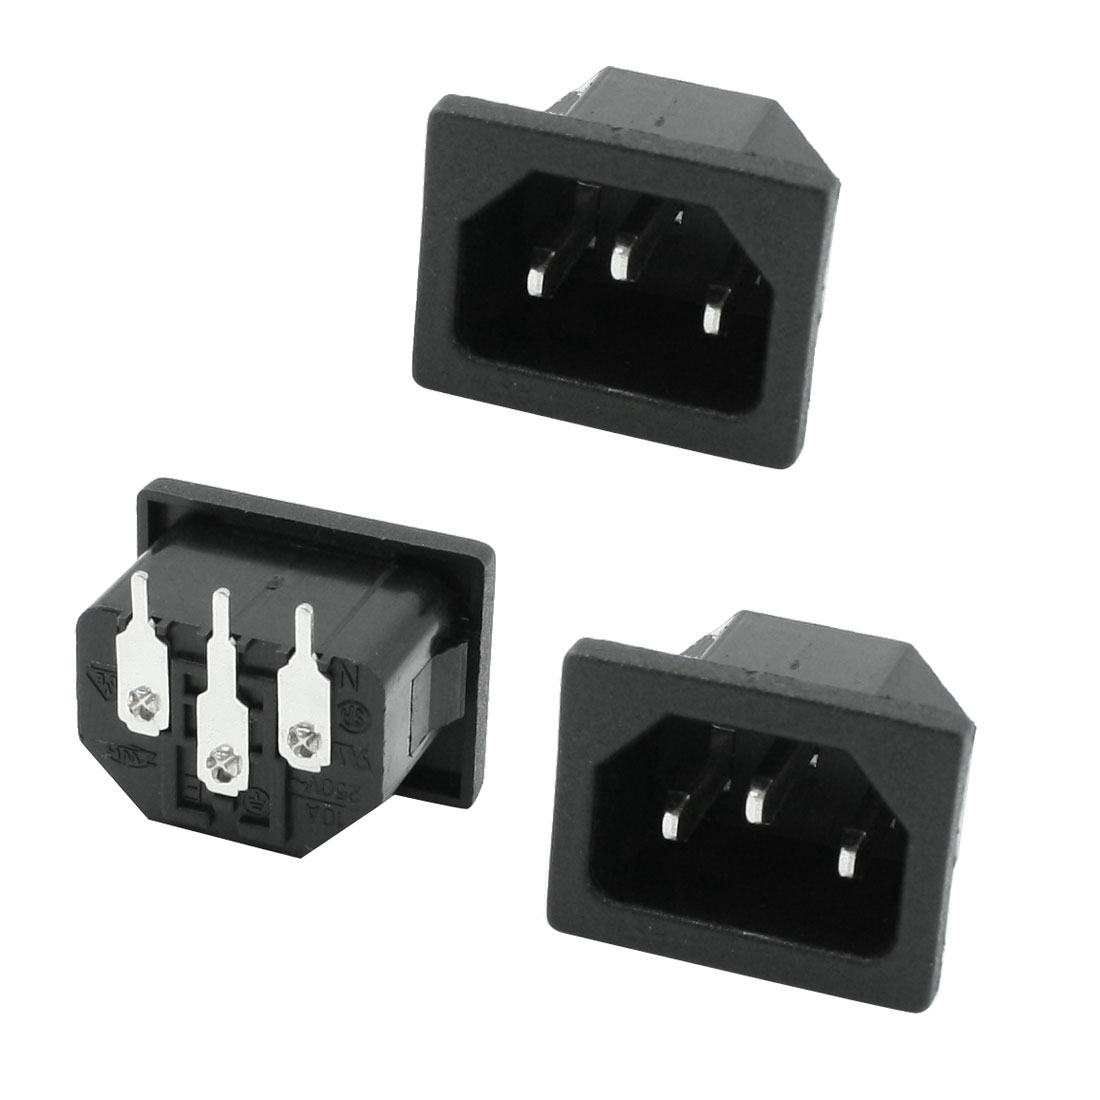 3 Pcs IEC 60320 Electrical Black C14 Plug Adapter 250V 10A